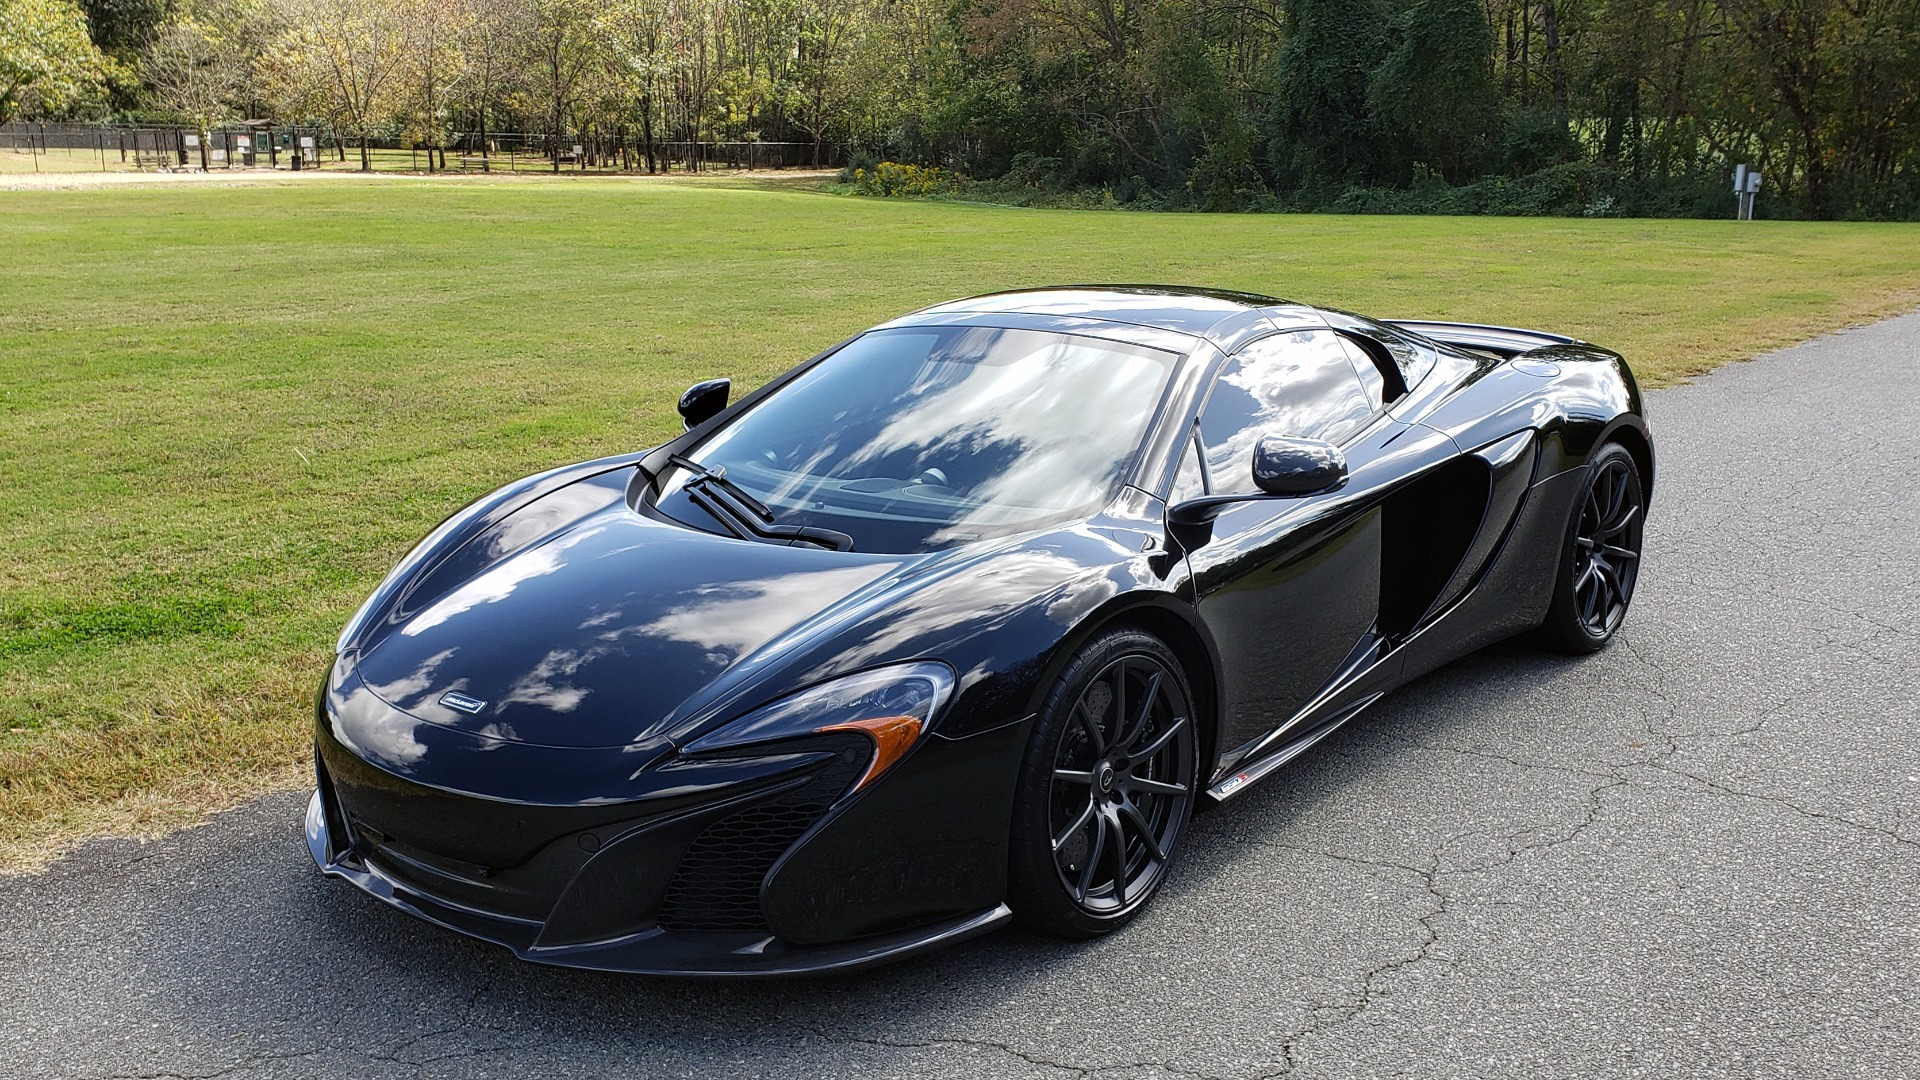 Used 2016 McLaren 650S SPIDER / 641HP / PARK SENSORS / LOW MILES / 1-OWNER for sale Sold at Formula Imports in Charlotte NC 28227 3